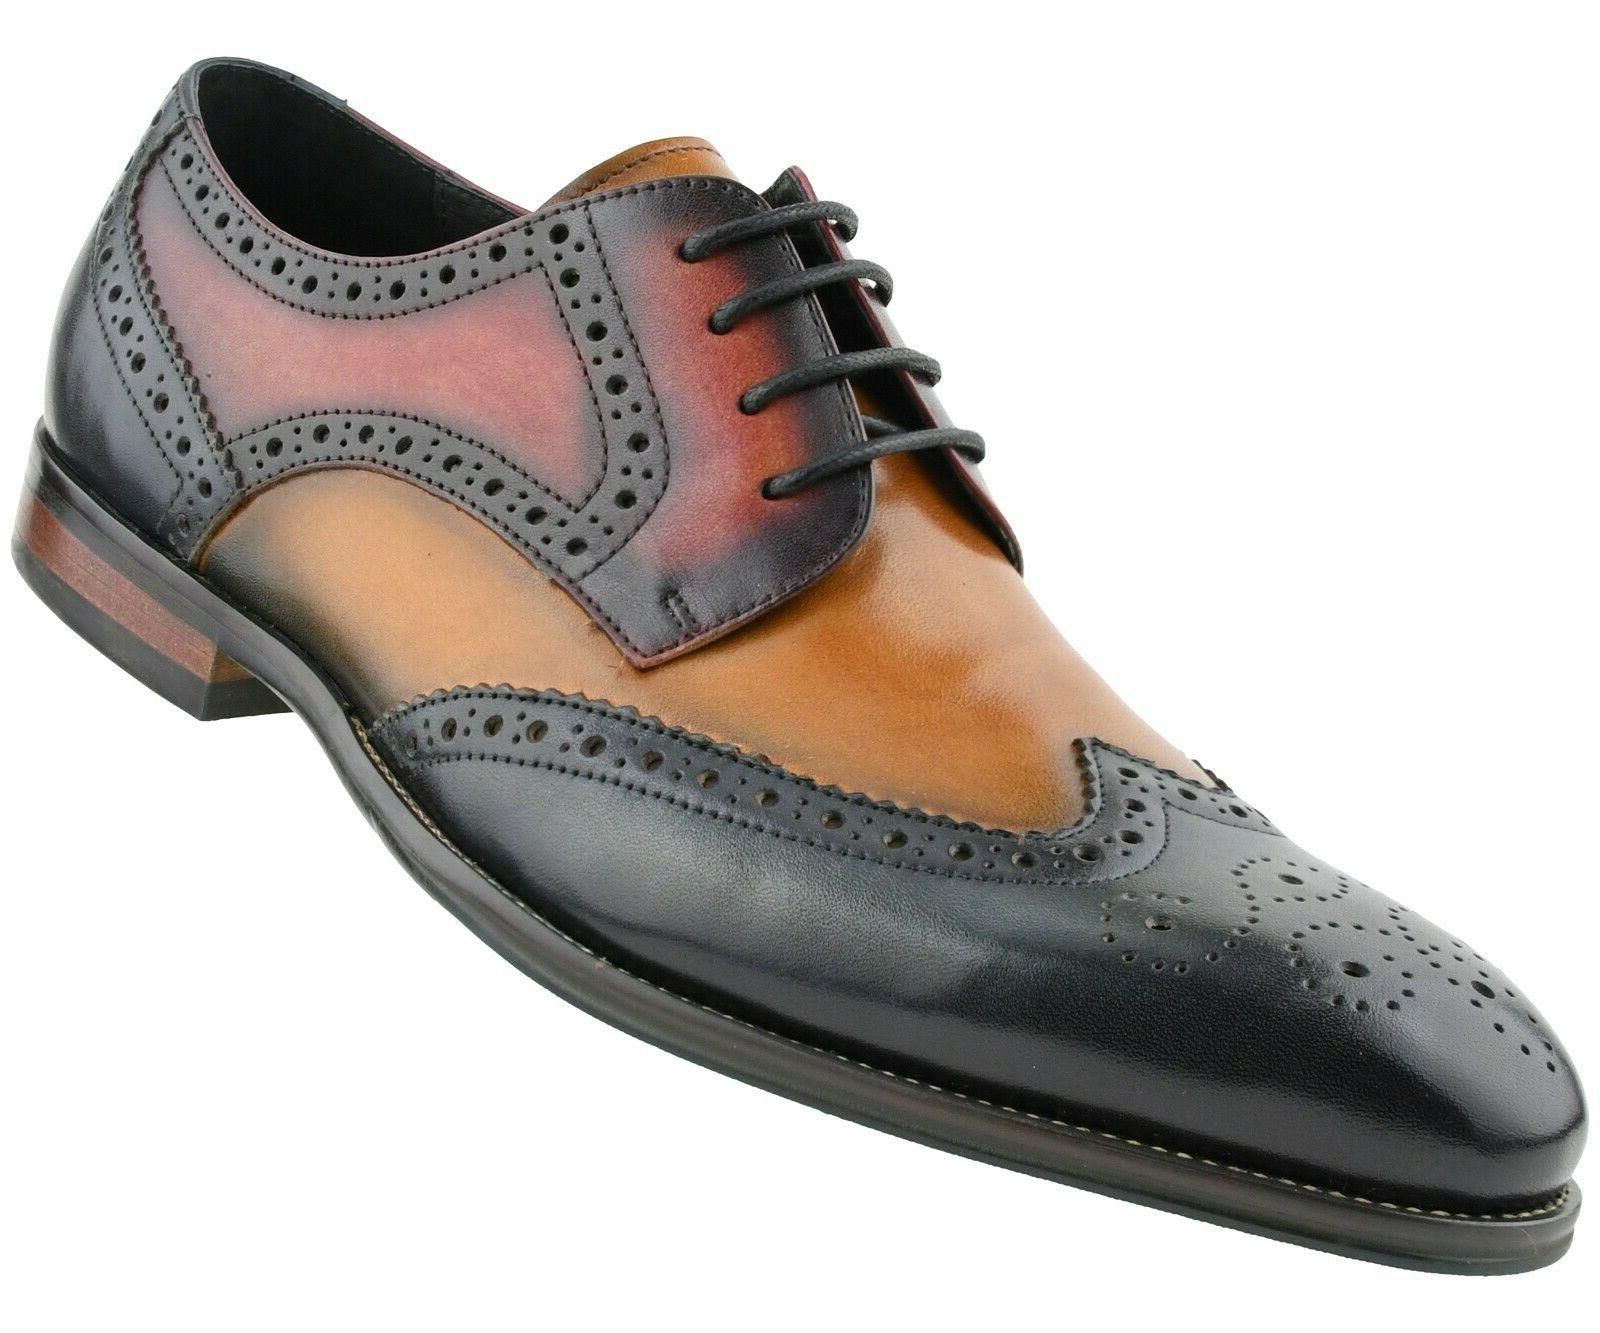 Men's Shoes, Leather for Multi Wing Oxfords